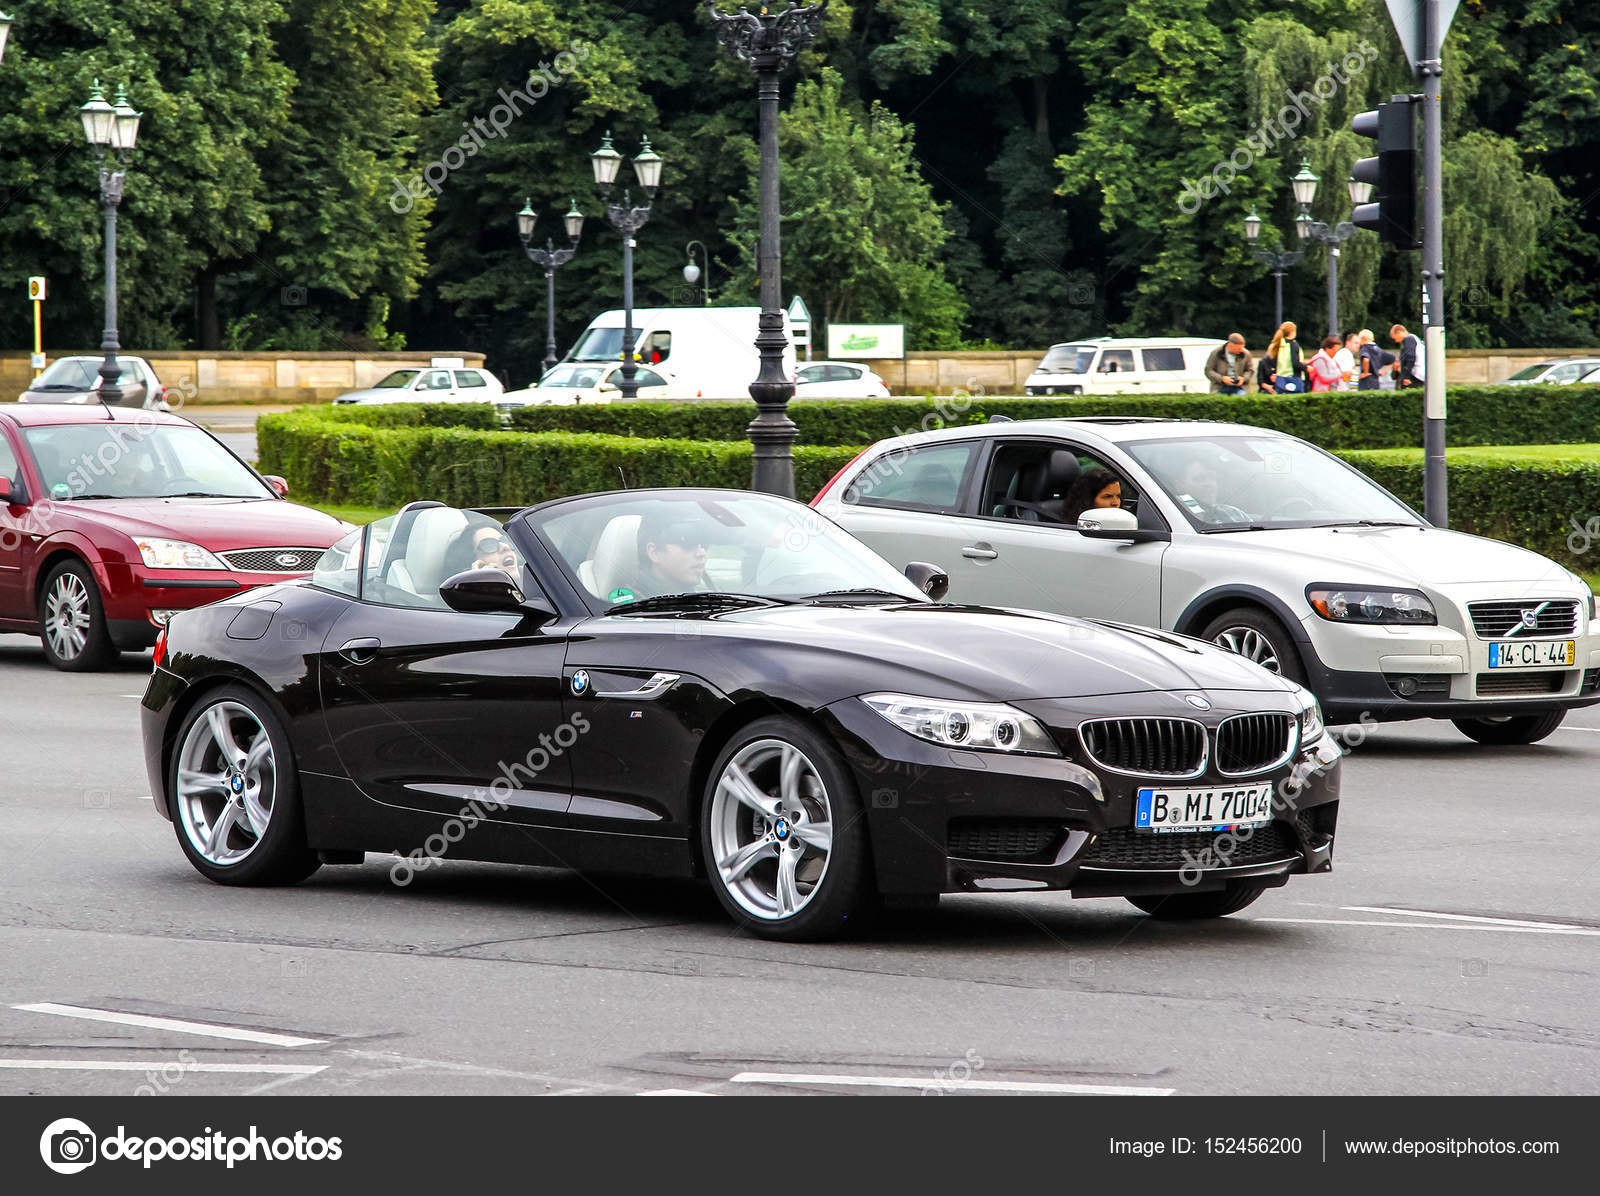 Bmw Z4 2000 2010 Bmw Z4 Sdrive30i Vs 2000 Z3 M Roadster